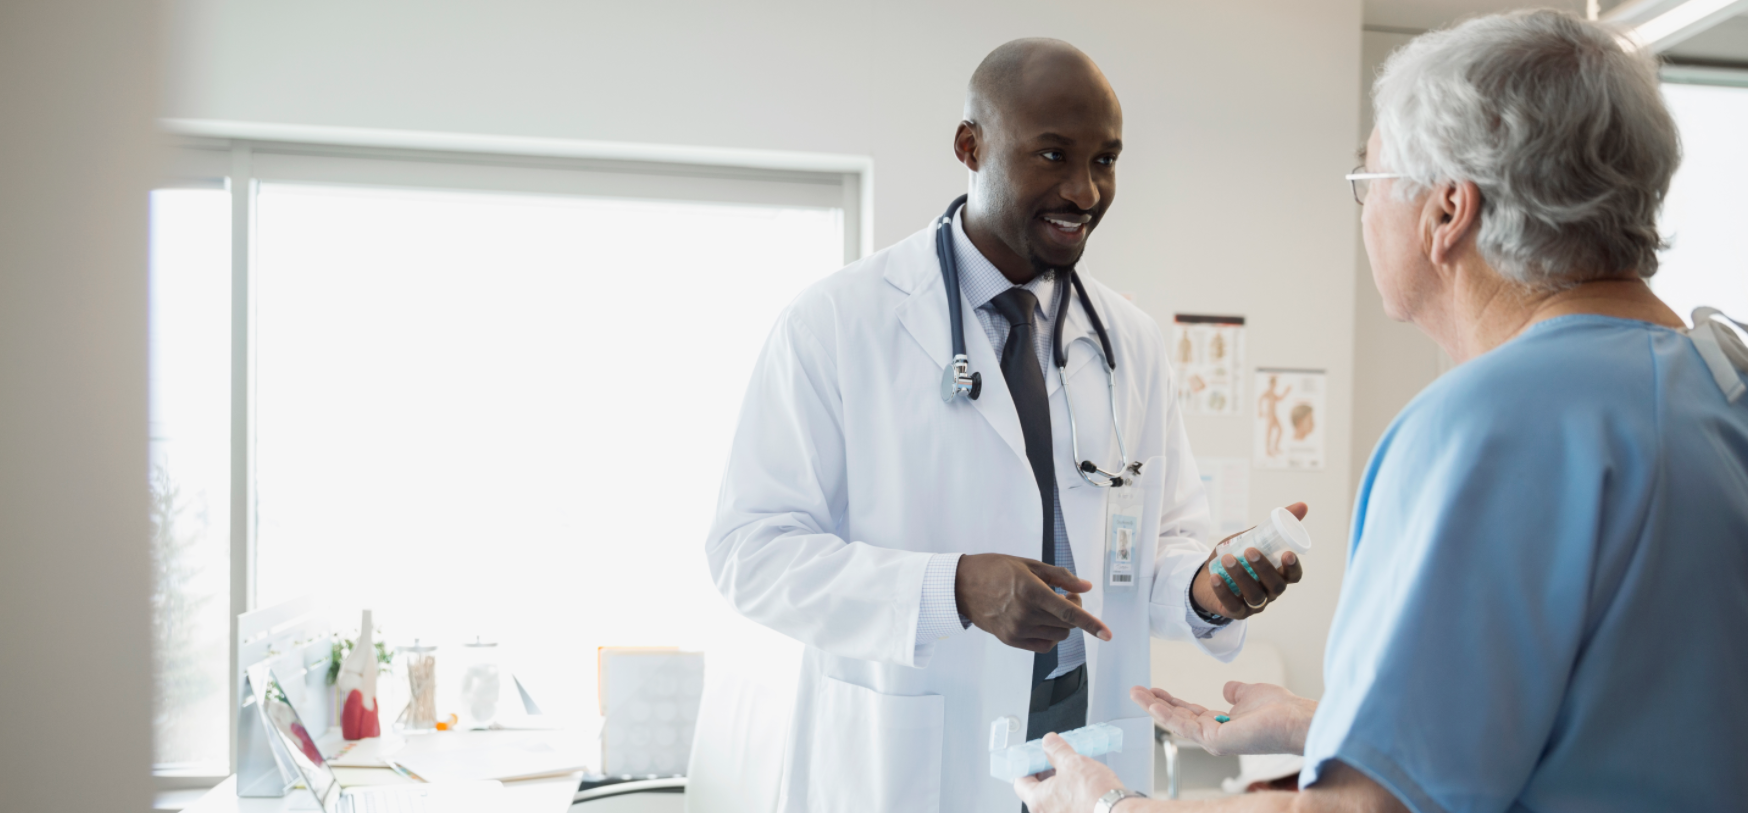 Click here to learn Why It Takes a Village to Raise a Doctor. Watch this video to learn more about the health equity opportunity that exists to increase the number of Black physicians.